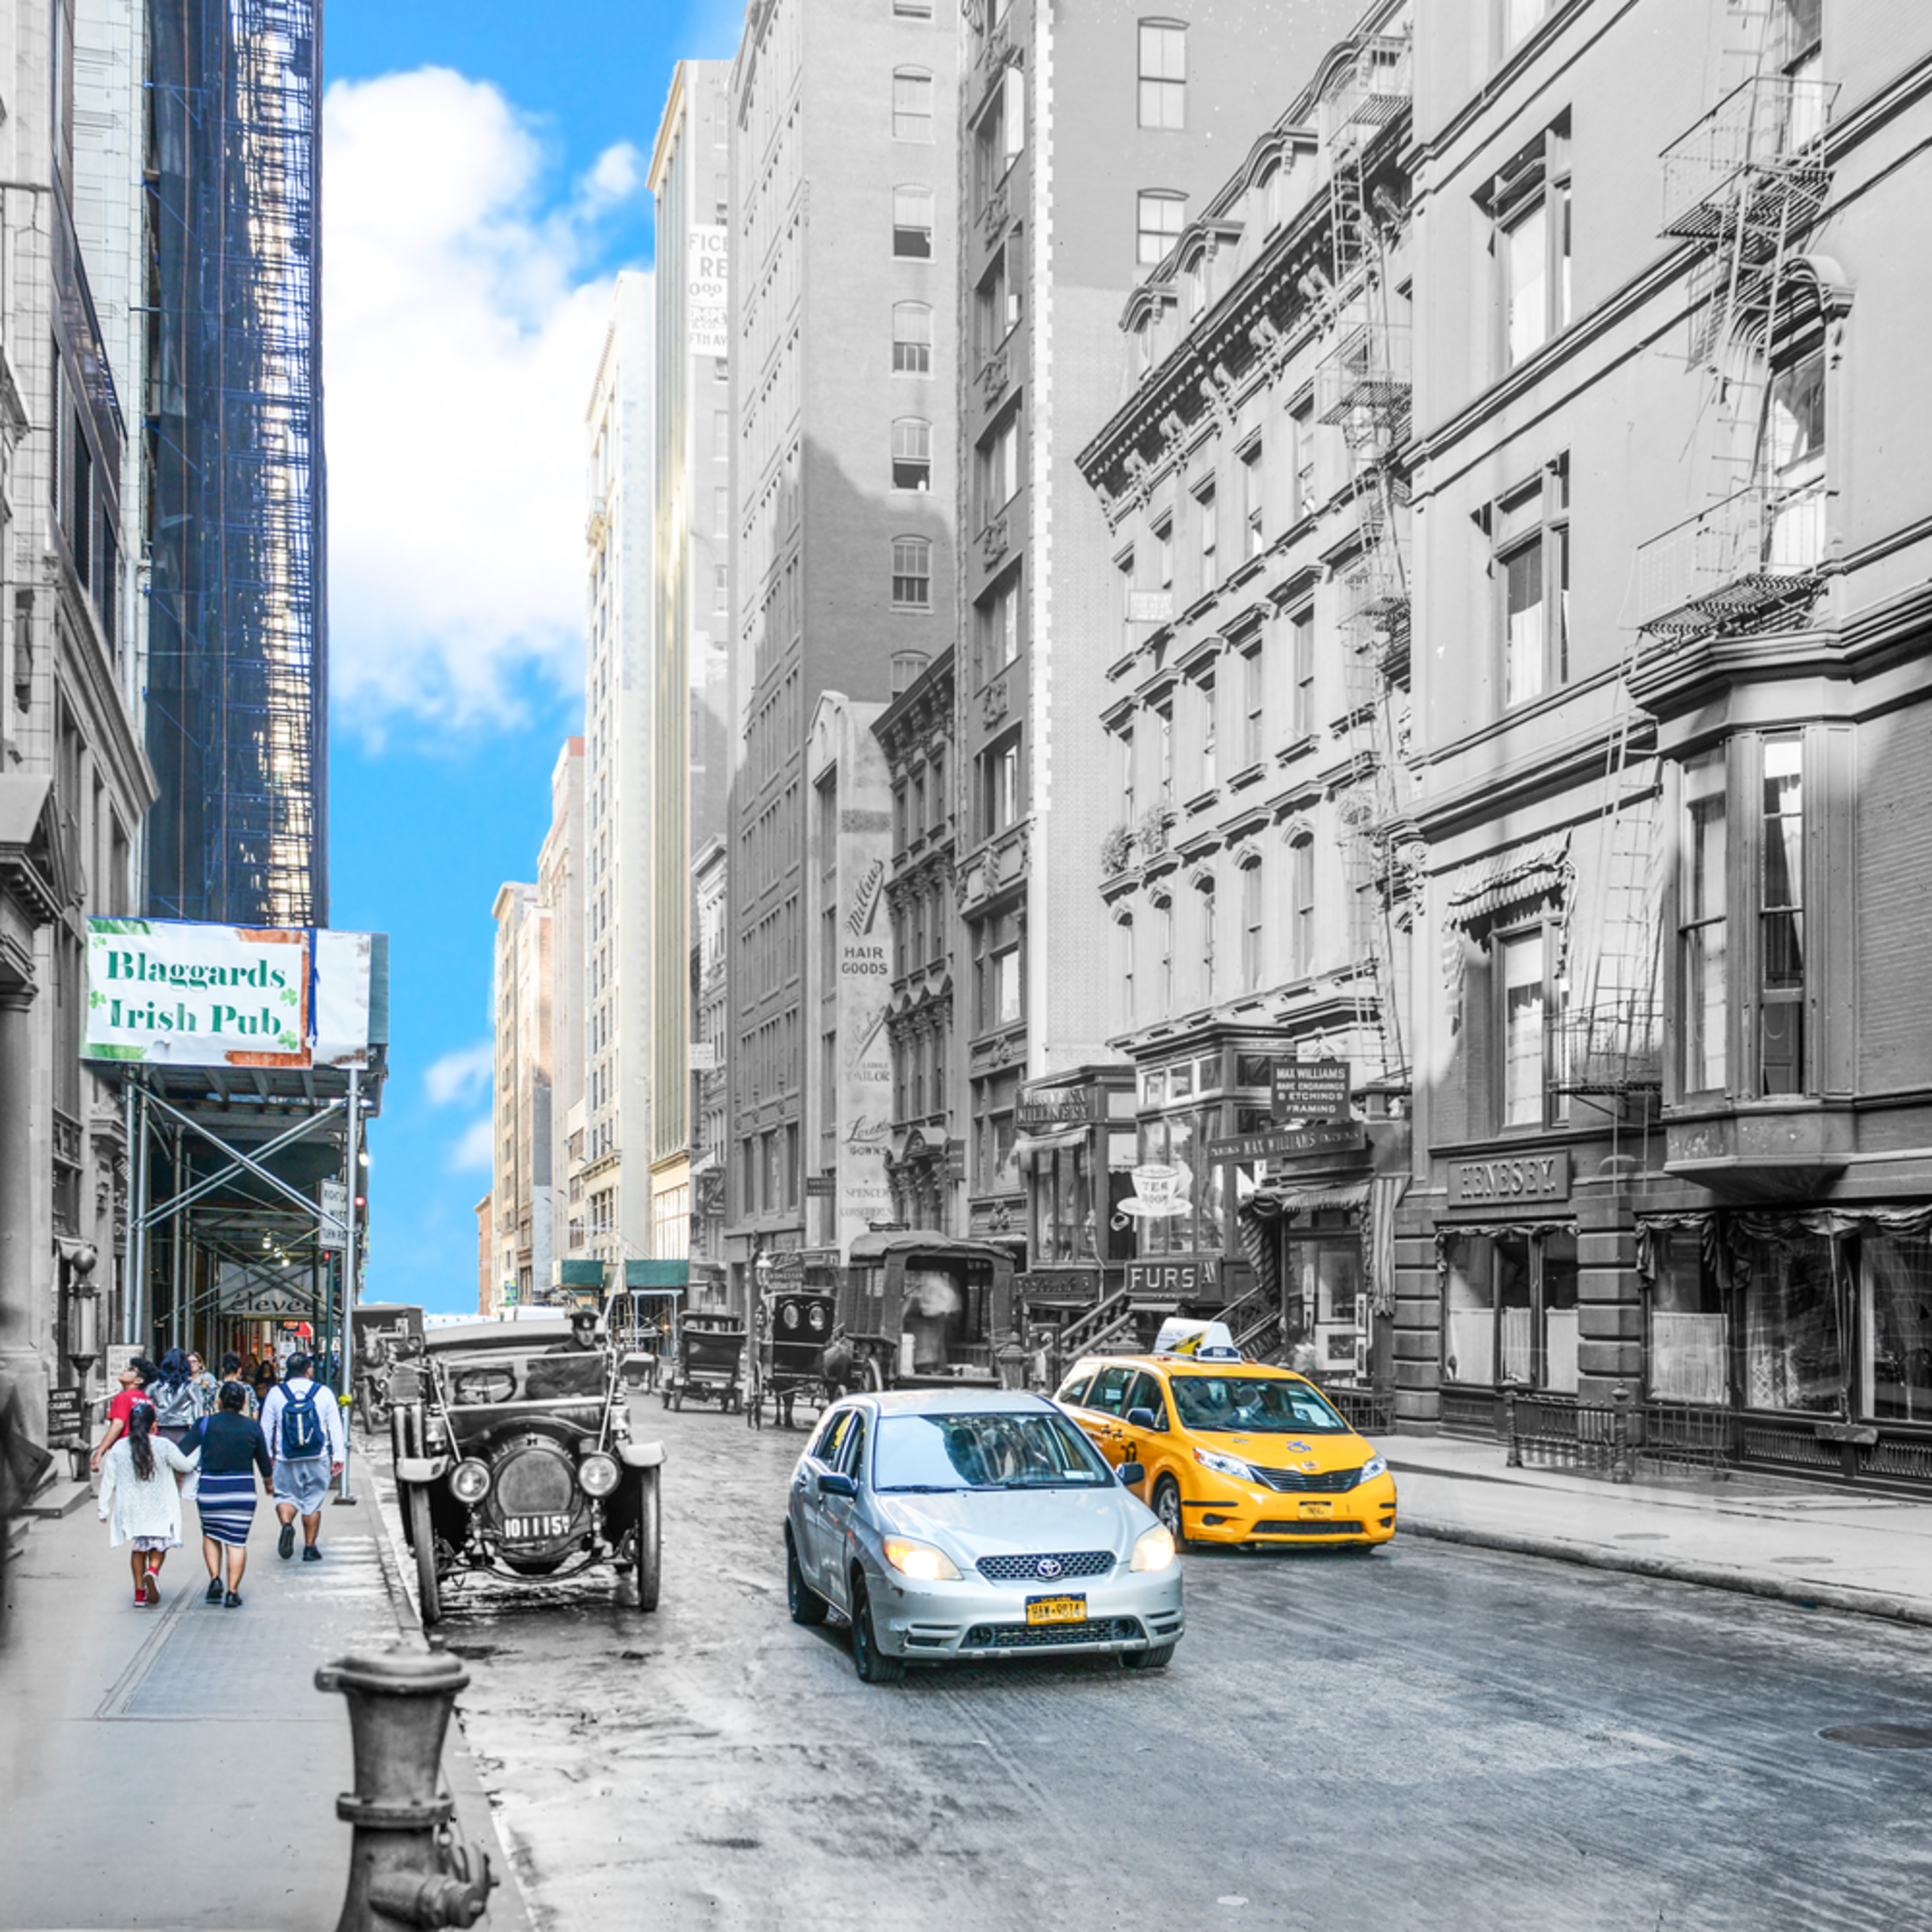 Dsc 1162 thirty eighth street west from fifth avenue 32x48 vkbg0q